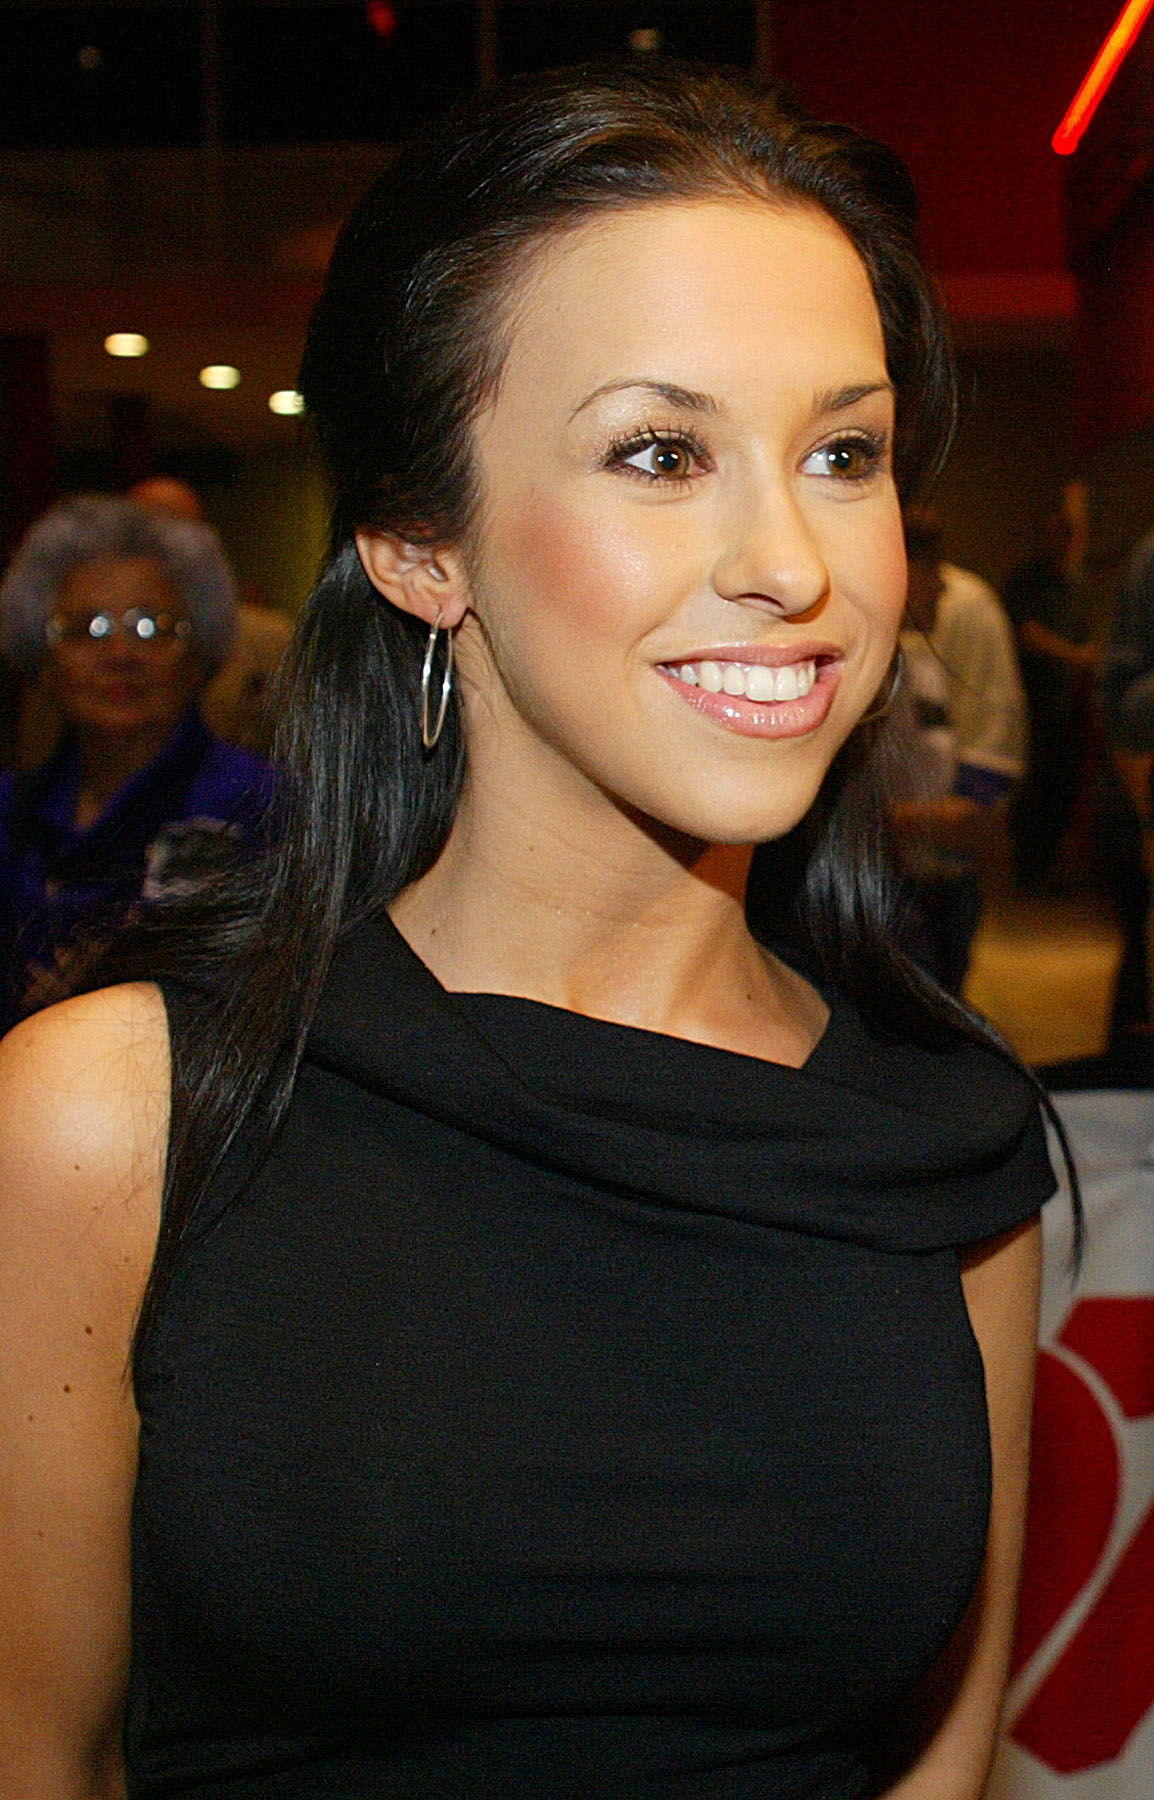 Photo of Lacey Chabert: An American actress and voice actress